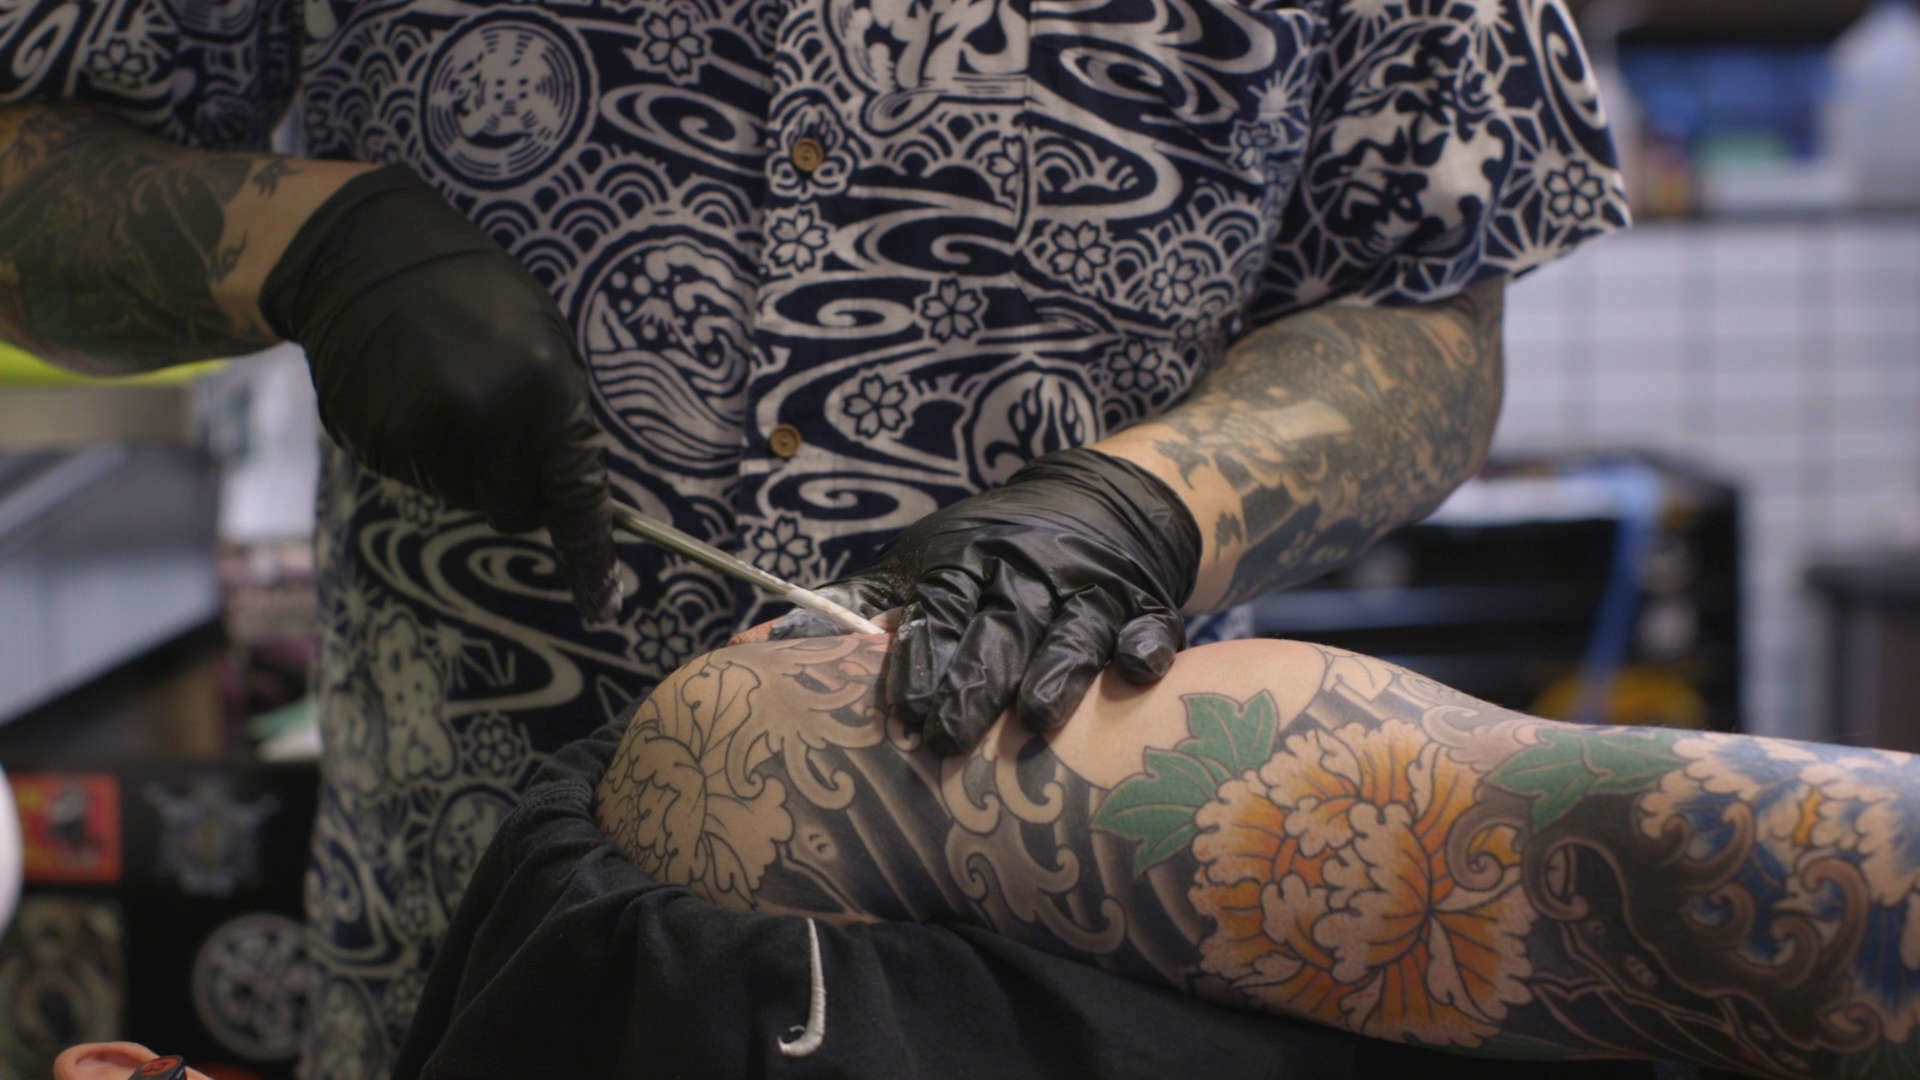 Res: 1920x1080, Changing Perceptions of Tattoos in Japan